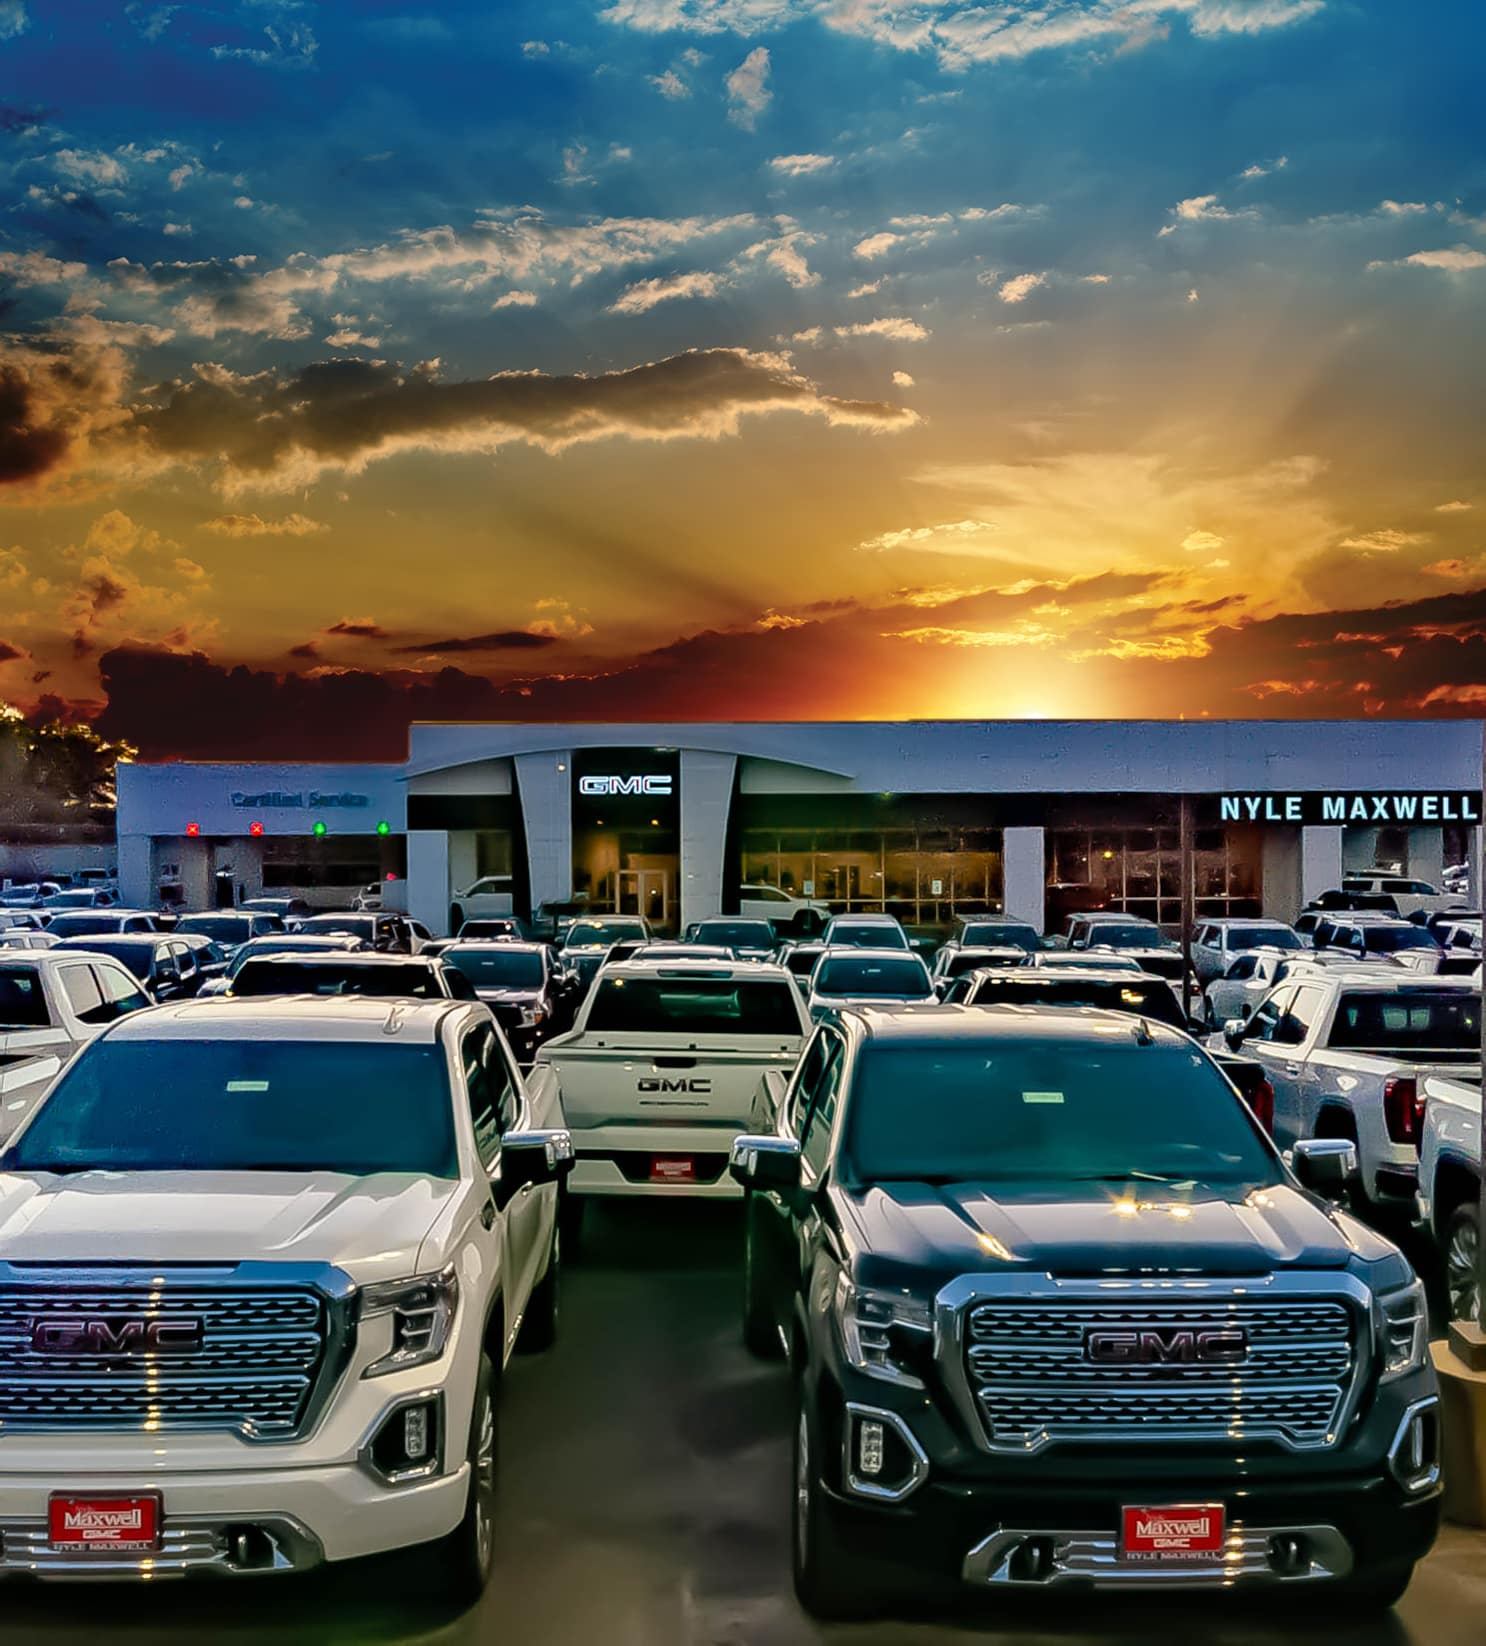 Nyle Maxwell GMC homepage SEO image - GMC trucks parked in the foreground in front of Nyle Maxwell GMB